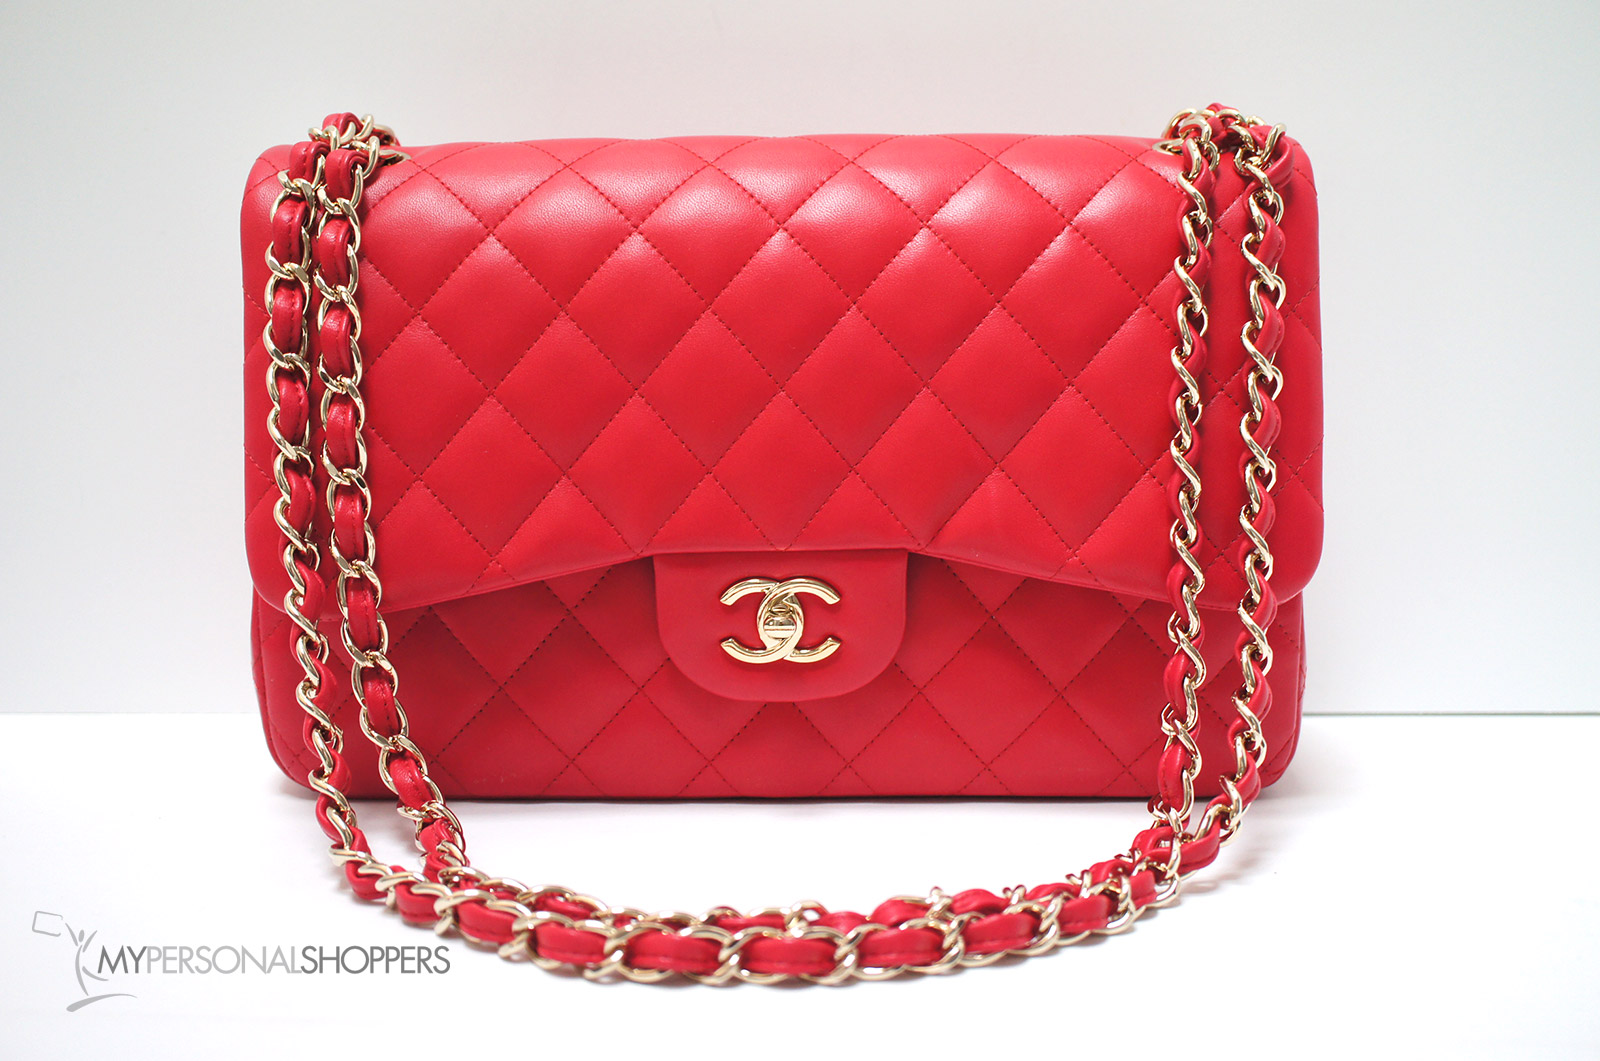 bee20b4c1b12 Chanel 16C Red Lambskin Leather GHW Classic Jumbo Flap Bag, New ...